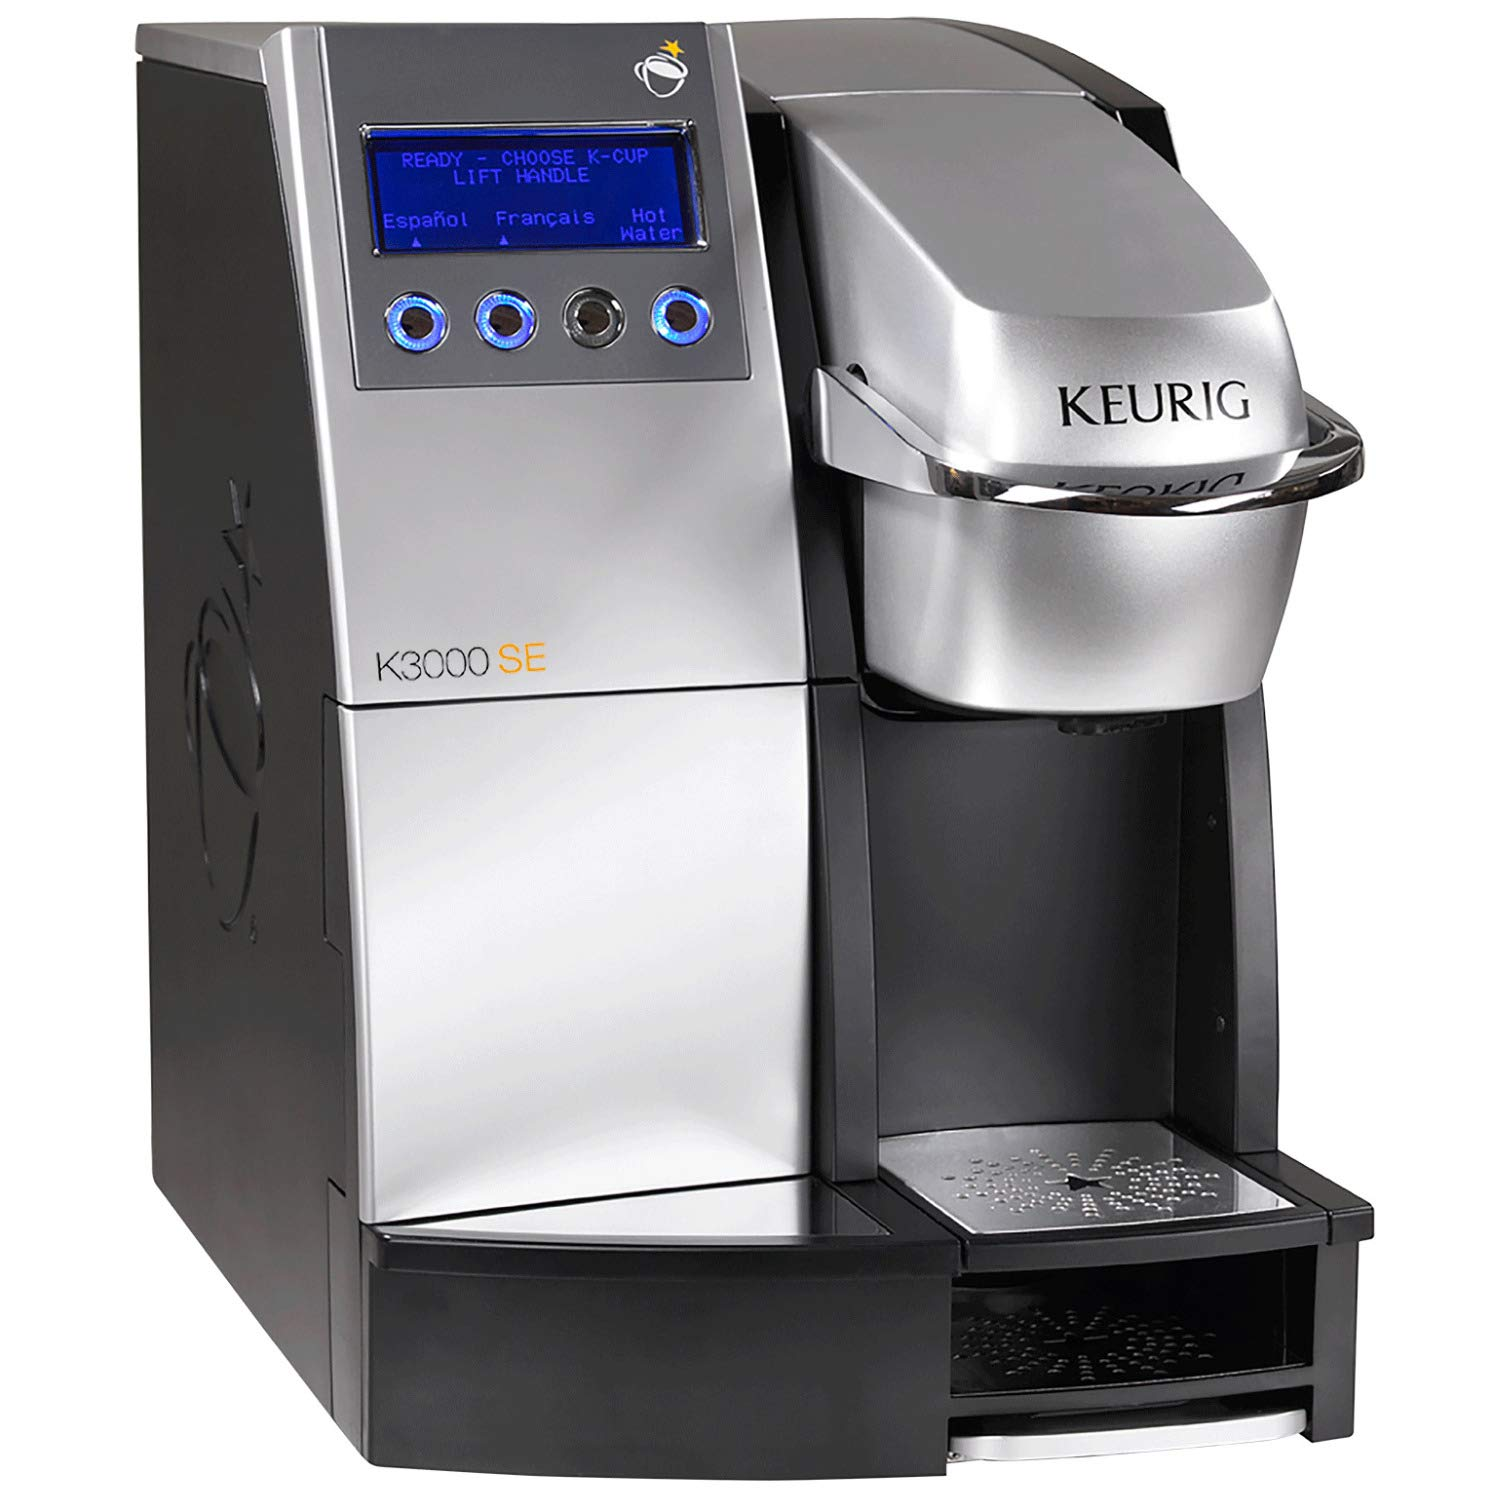 Amazon.com: Keurig K 3000 SE Coffee Commercial Single Cup Office Brewing  System: Single Serve Brewing Machines: Kitchen & Dining